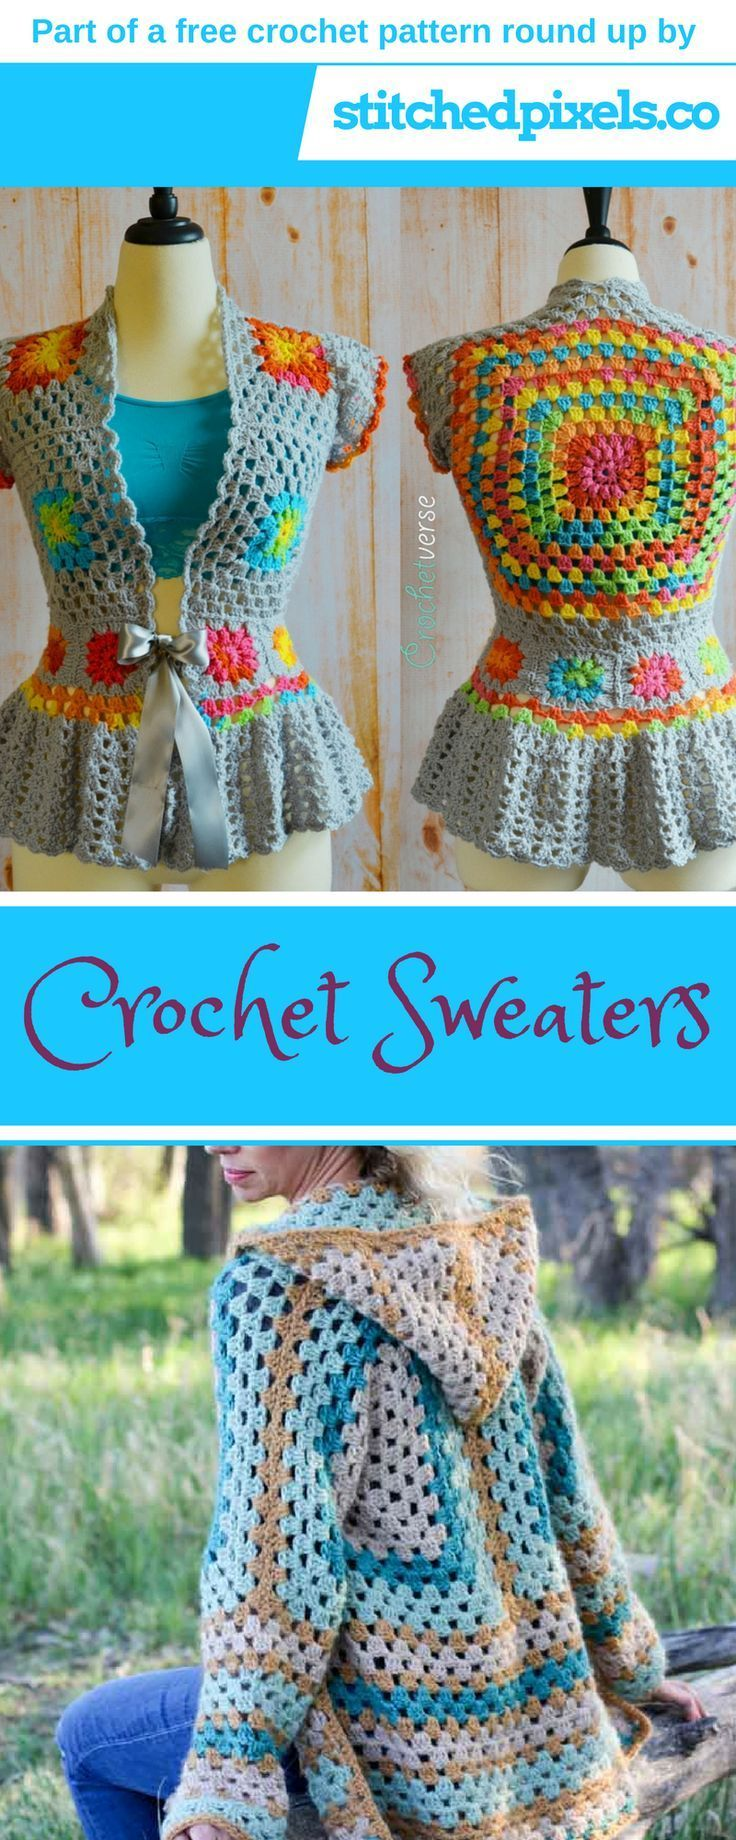 Free crochet pattern round up - Make your own warm and cozy sweater ...